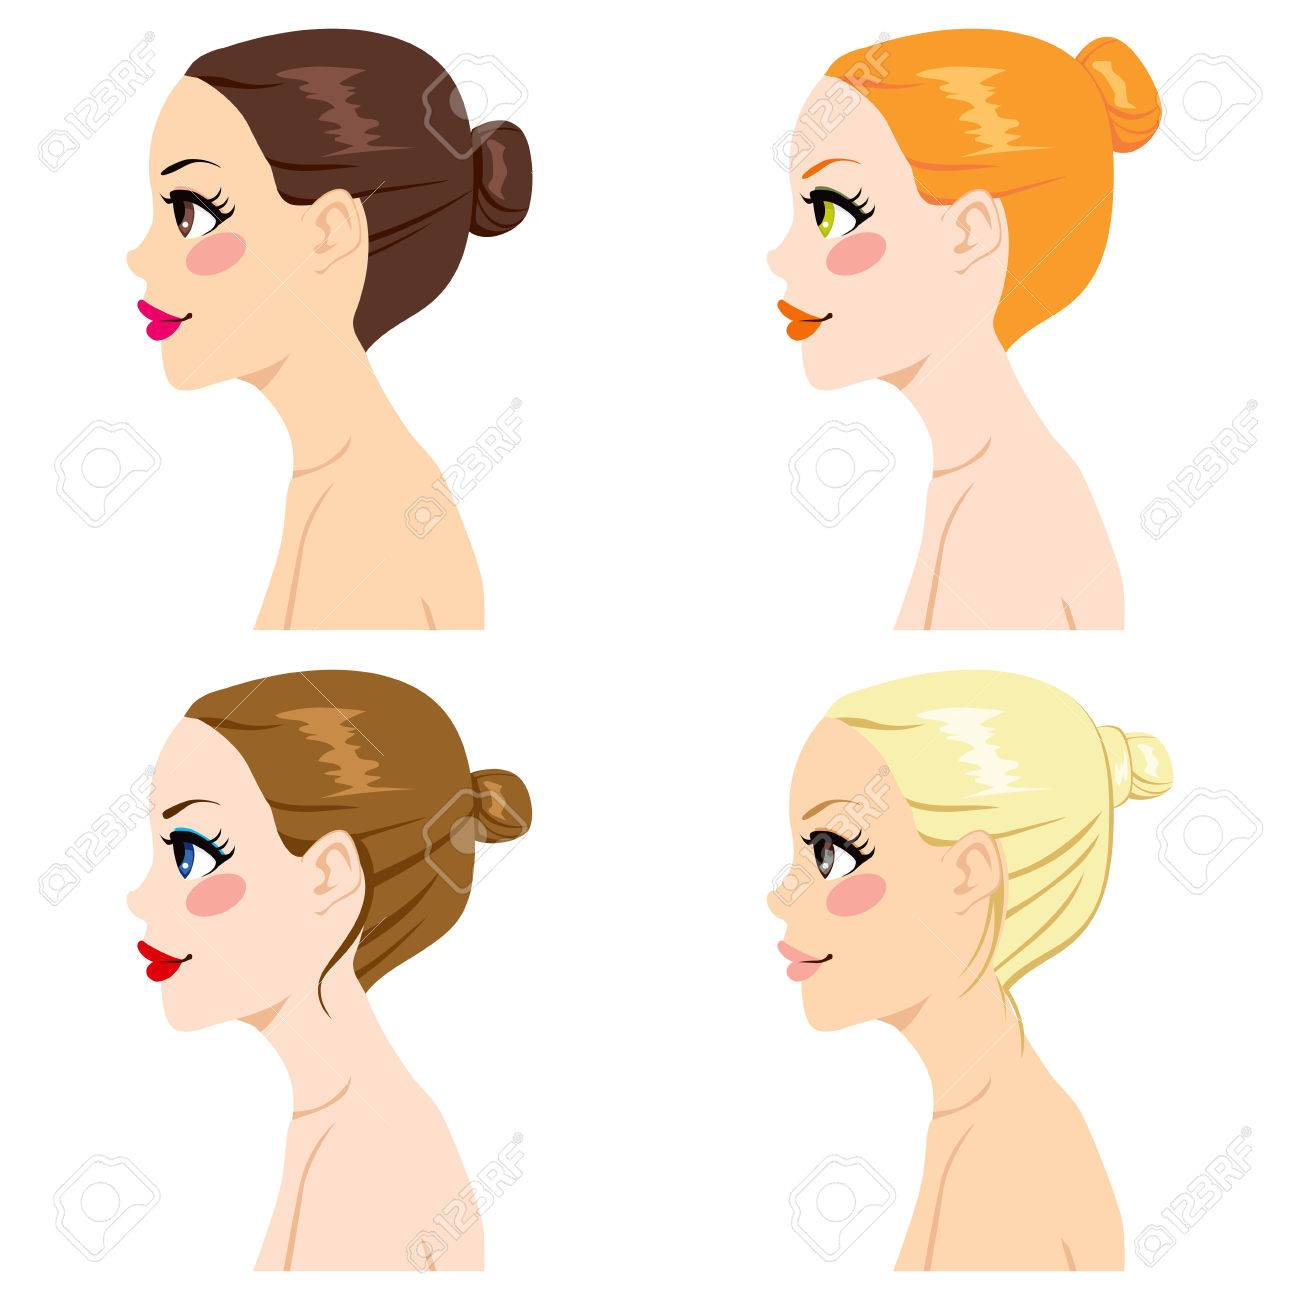 Enjoyable Four Women Profile With Different Hair Bun Styles And Hair Color Hairstyles For Men Maxibearus